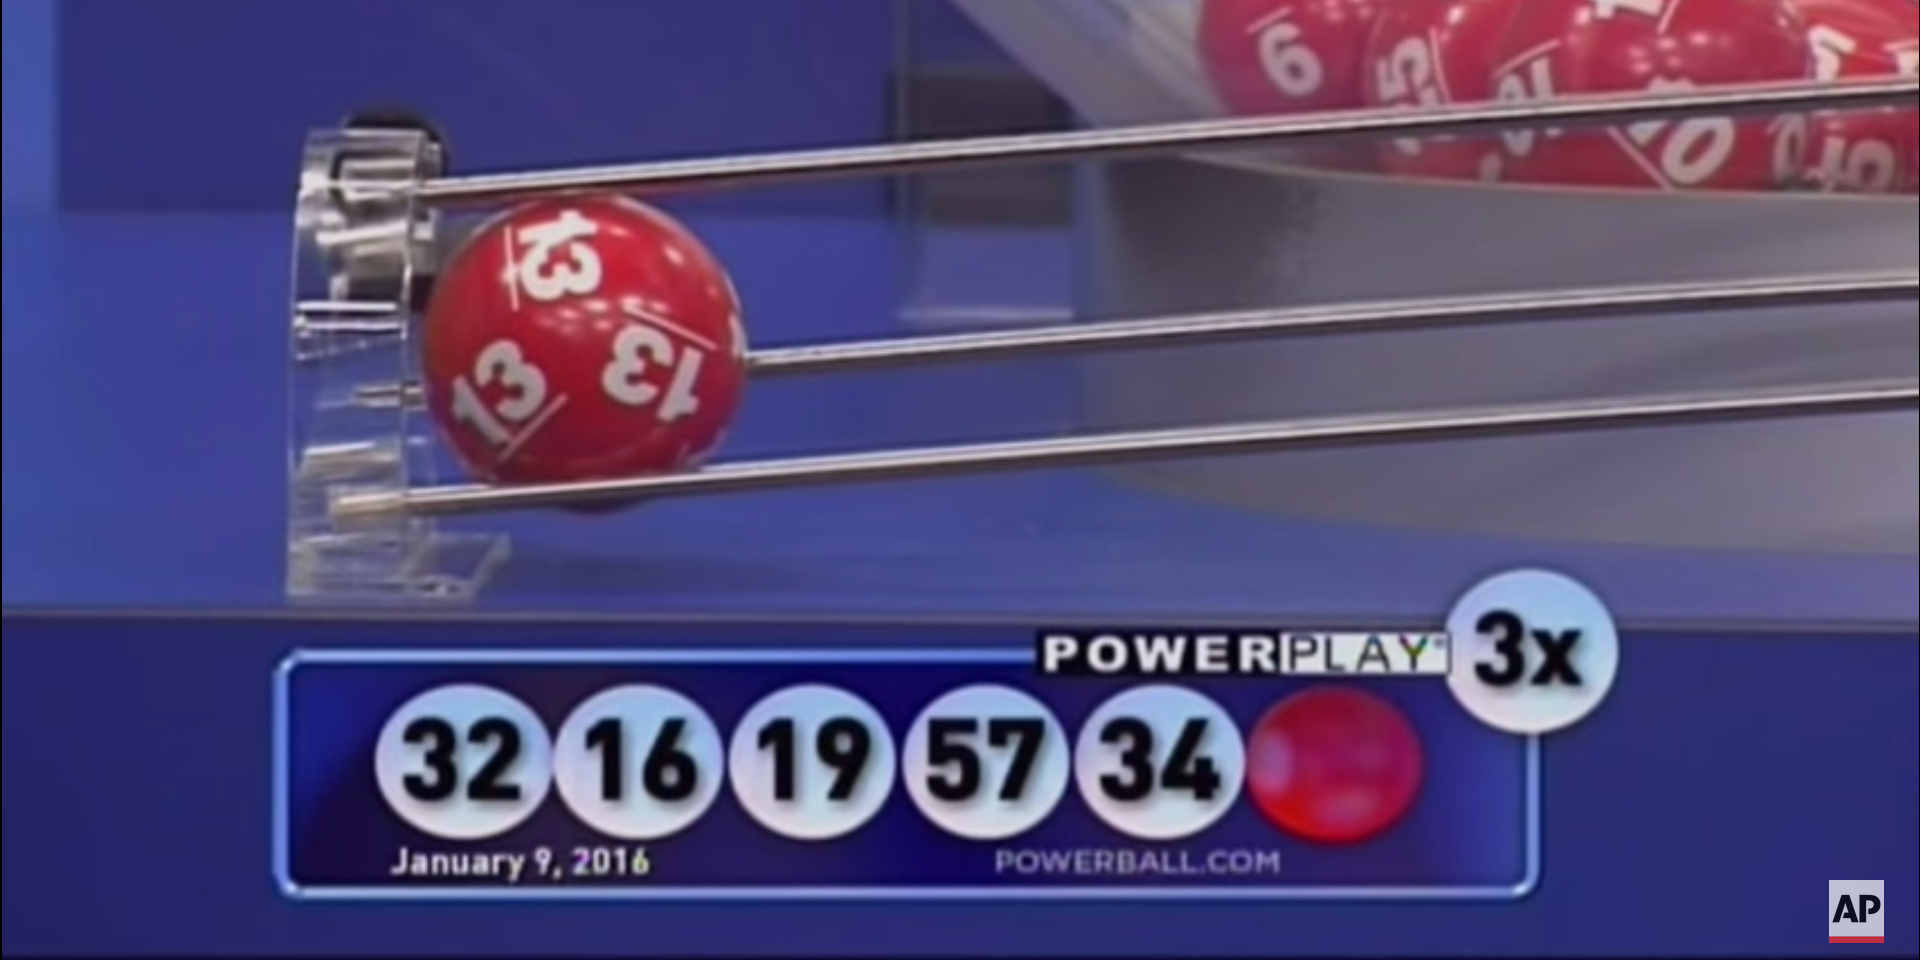 where does powerball money come from photo - 1